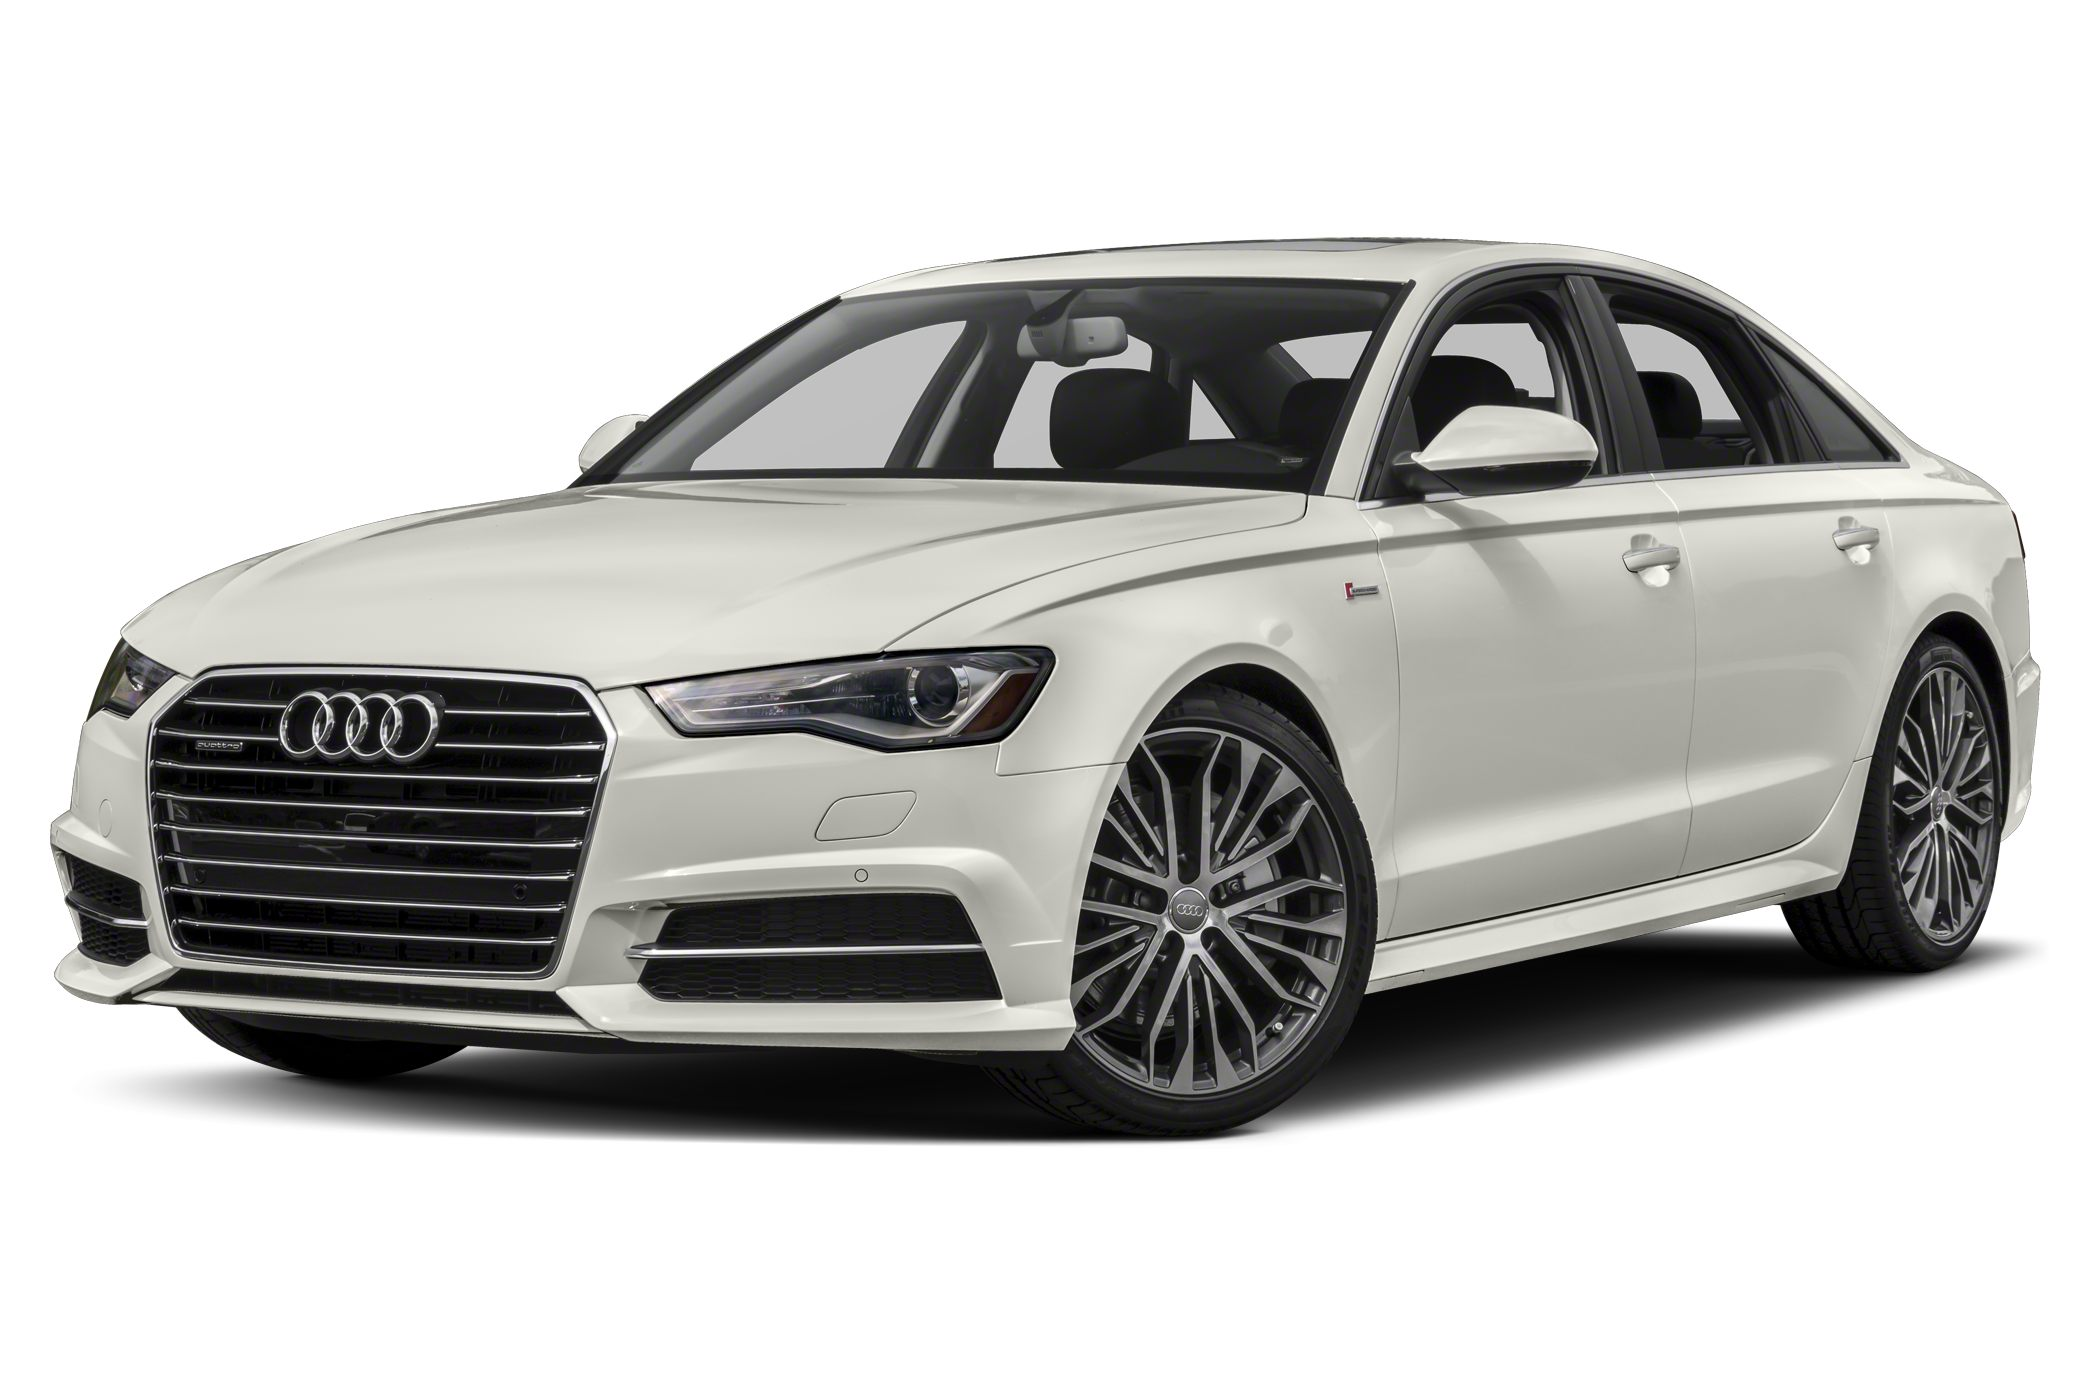 2016 audi a6 2 0 tfsi first drive photo gallery autoblog. Black Bedroom Furniture Sets. Home Design Ideas